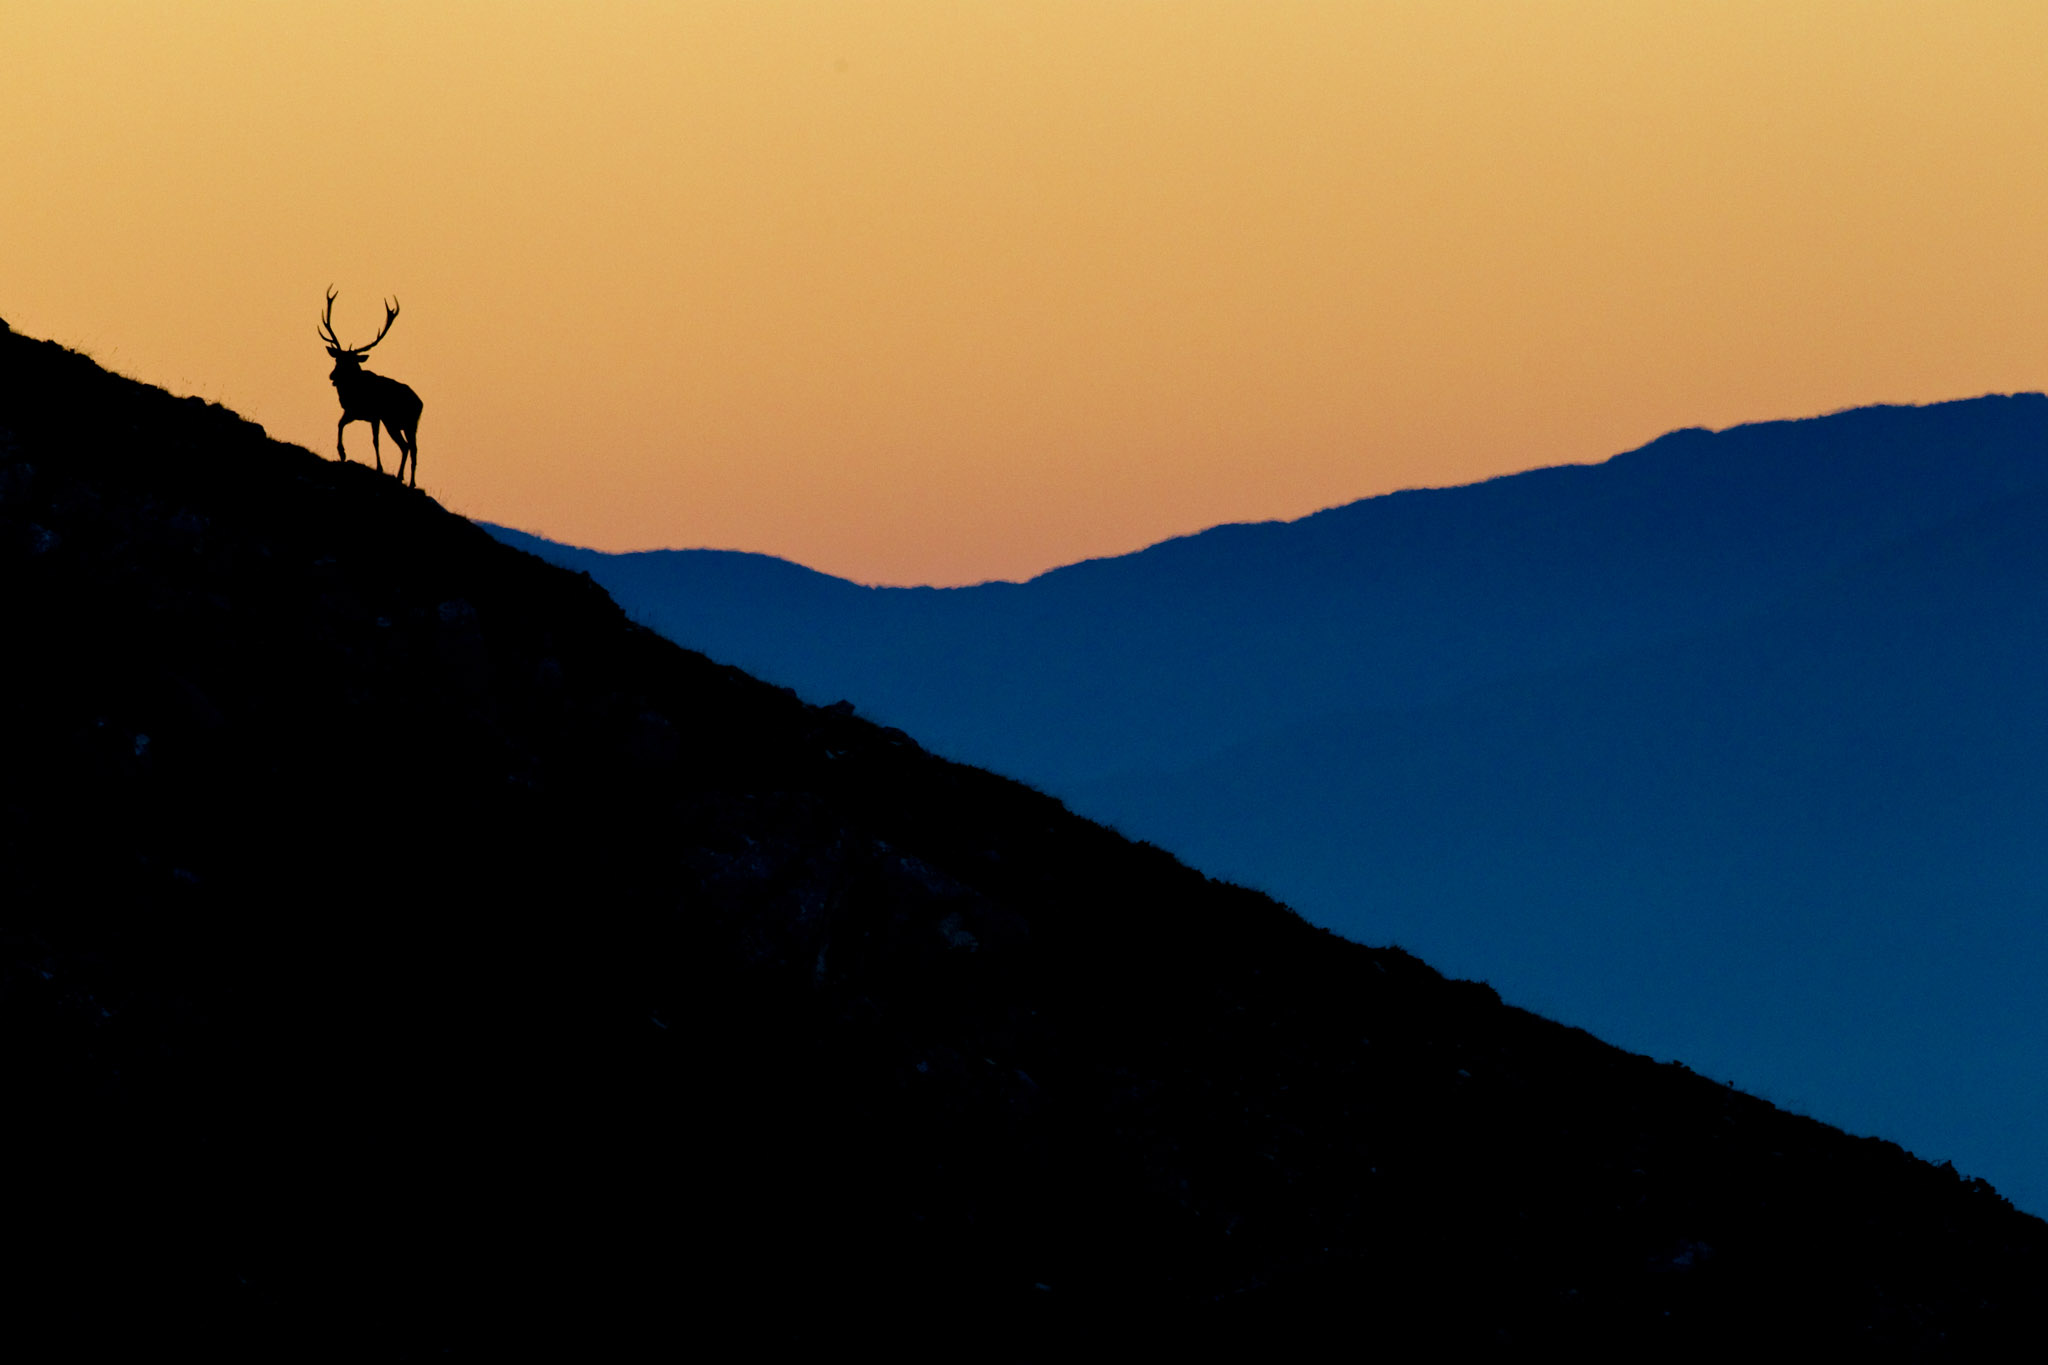 A red deer stag silhouetted against the sunrise in the Central Apennines rewilding area in Italy.